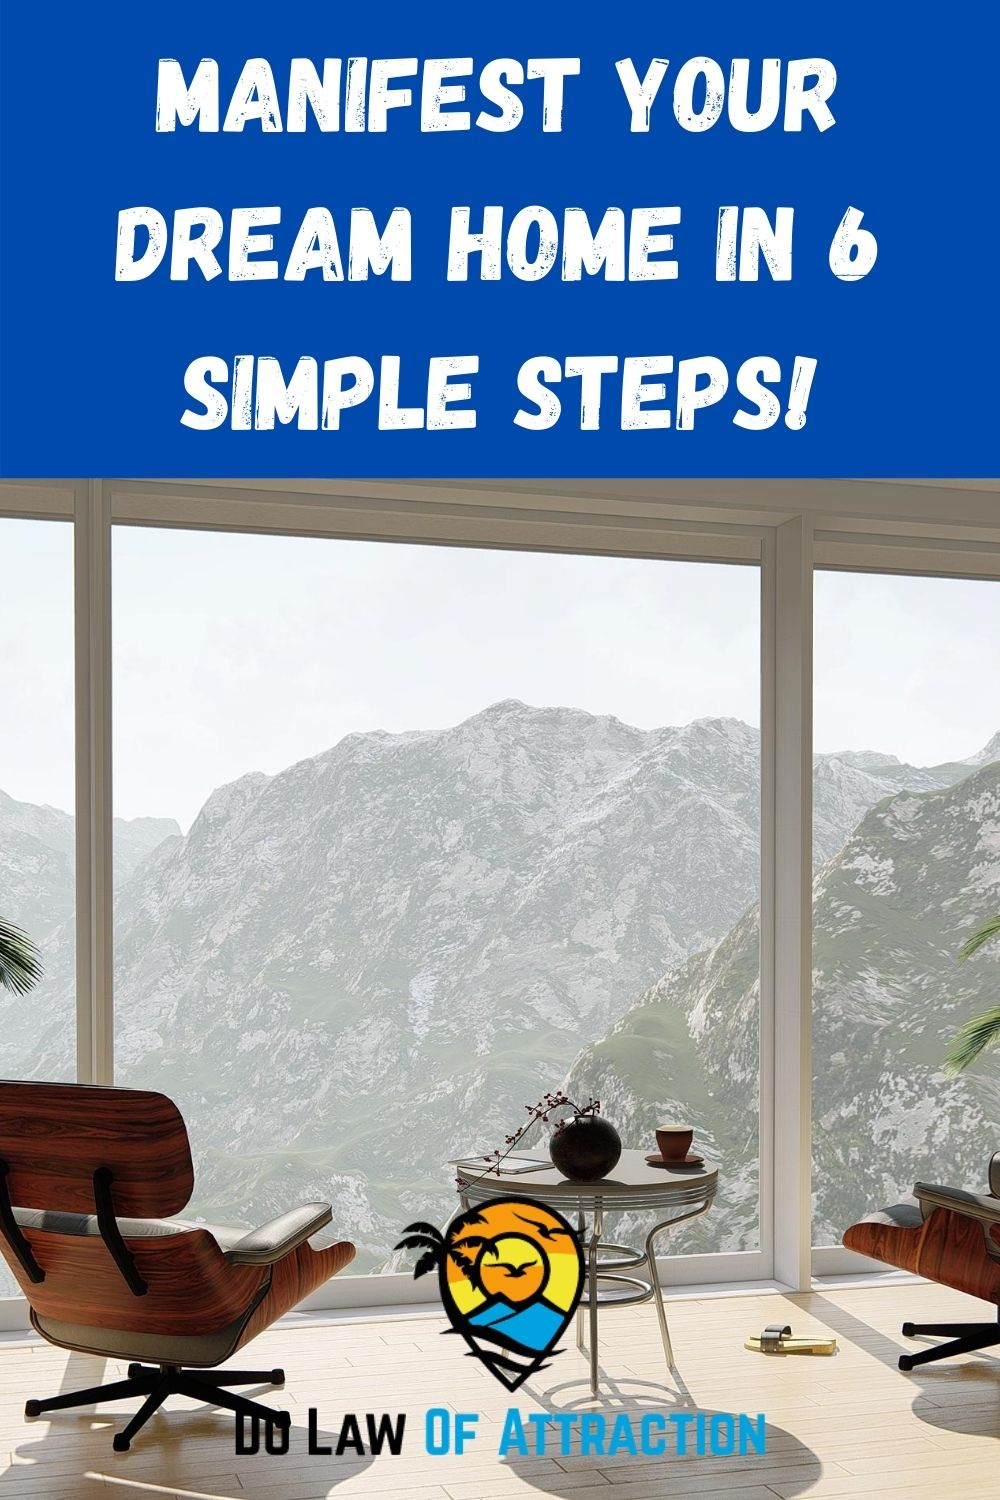 MANIFEST YOUR DREAM HOME IN 6 SIMPLE STEPS